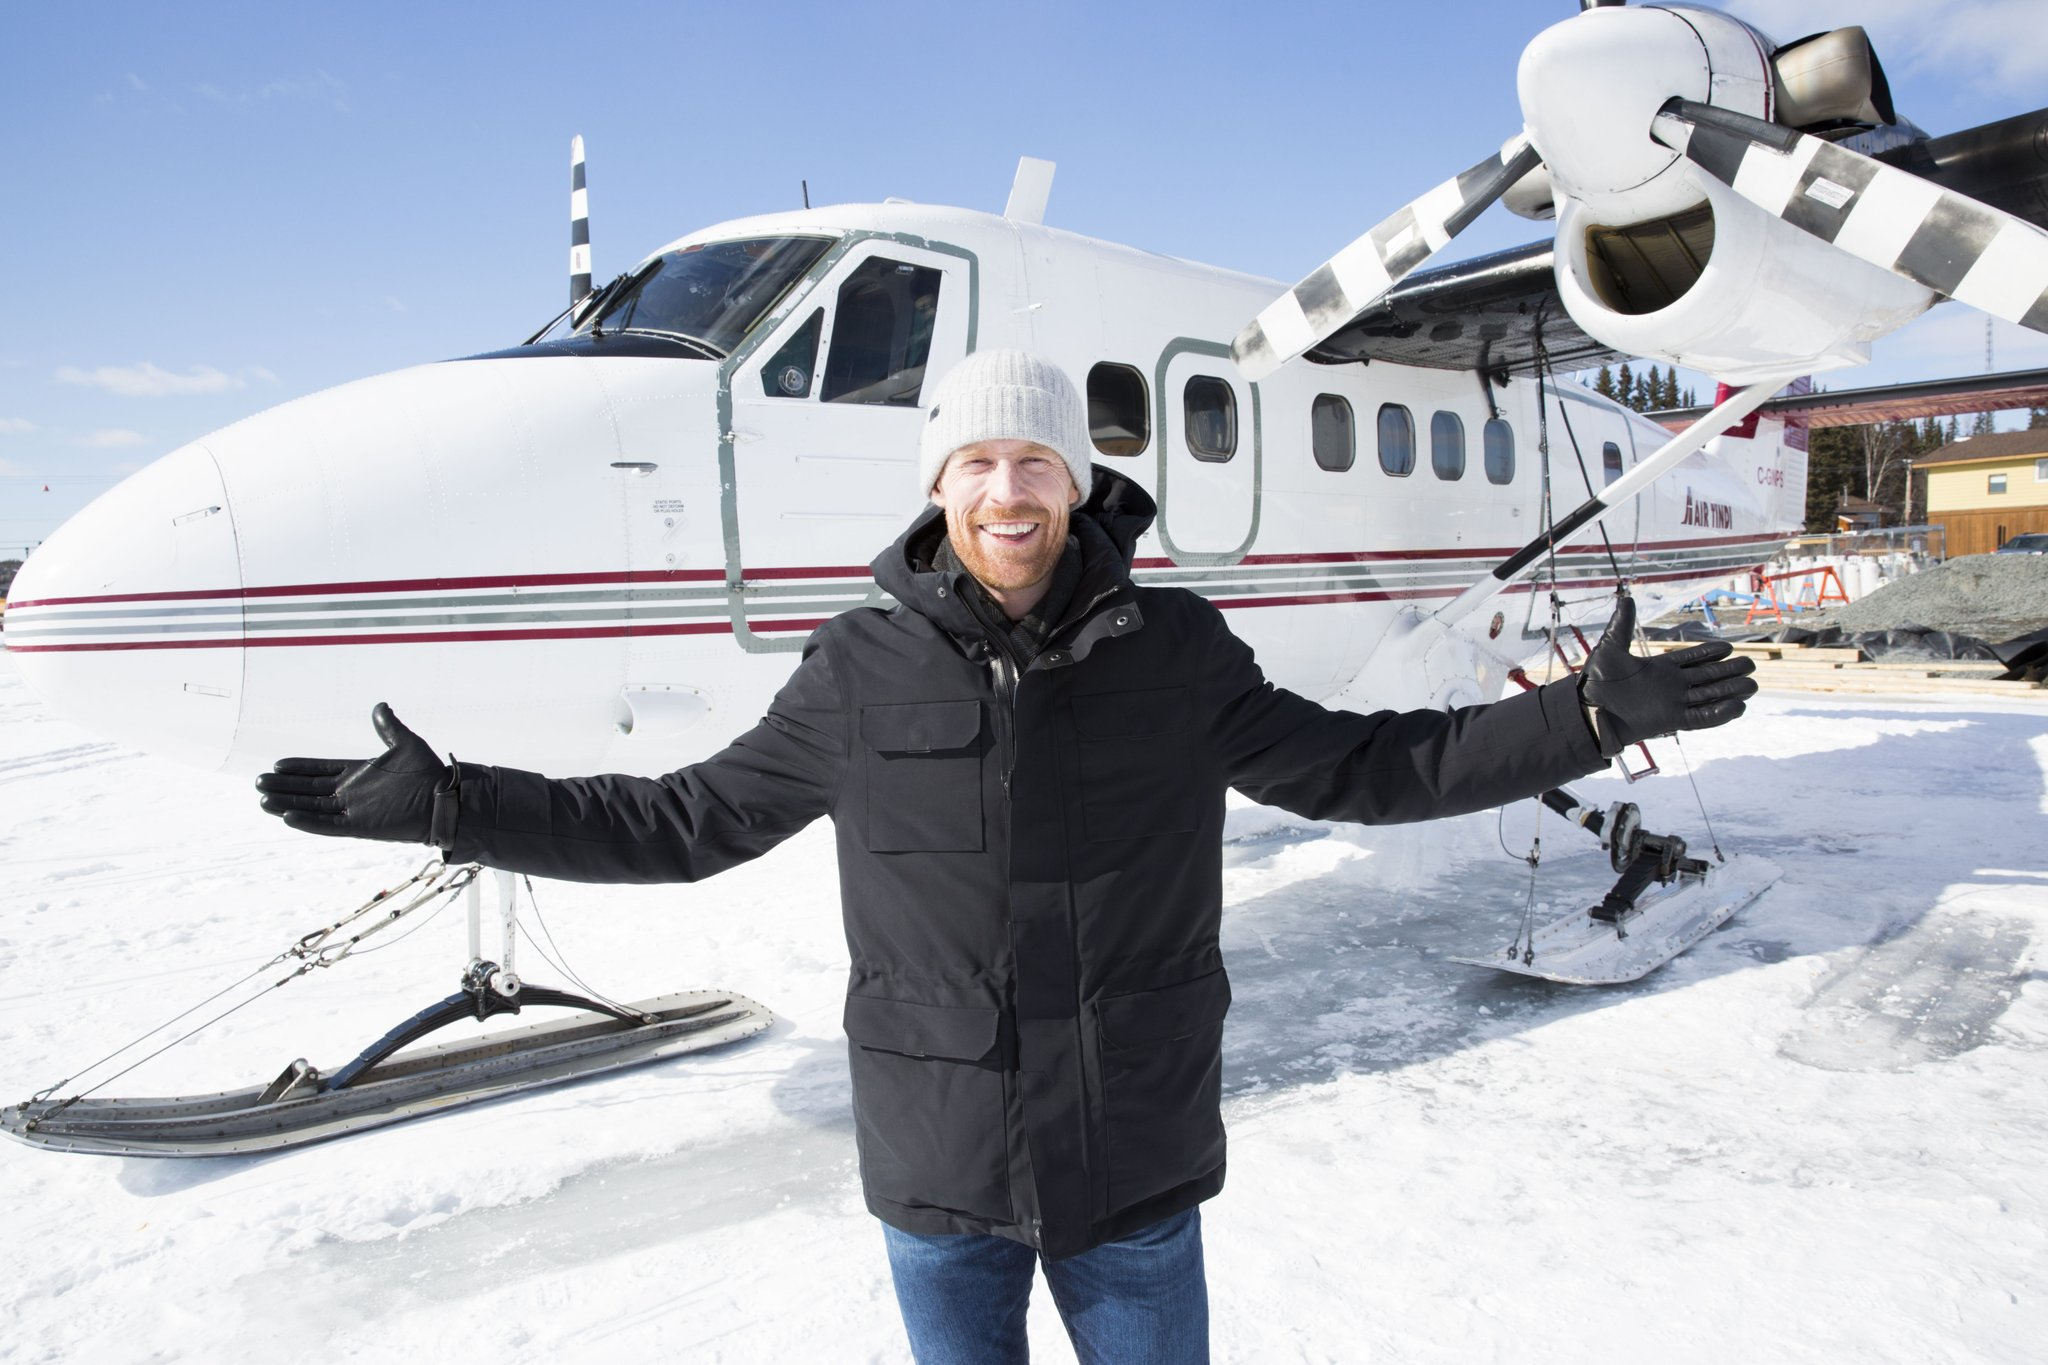 Yellowknife featured on The Amazing Race Canada - My